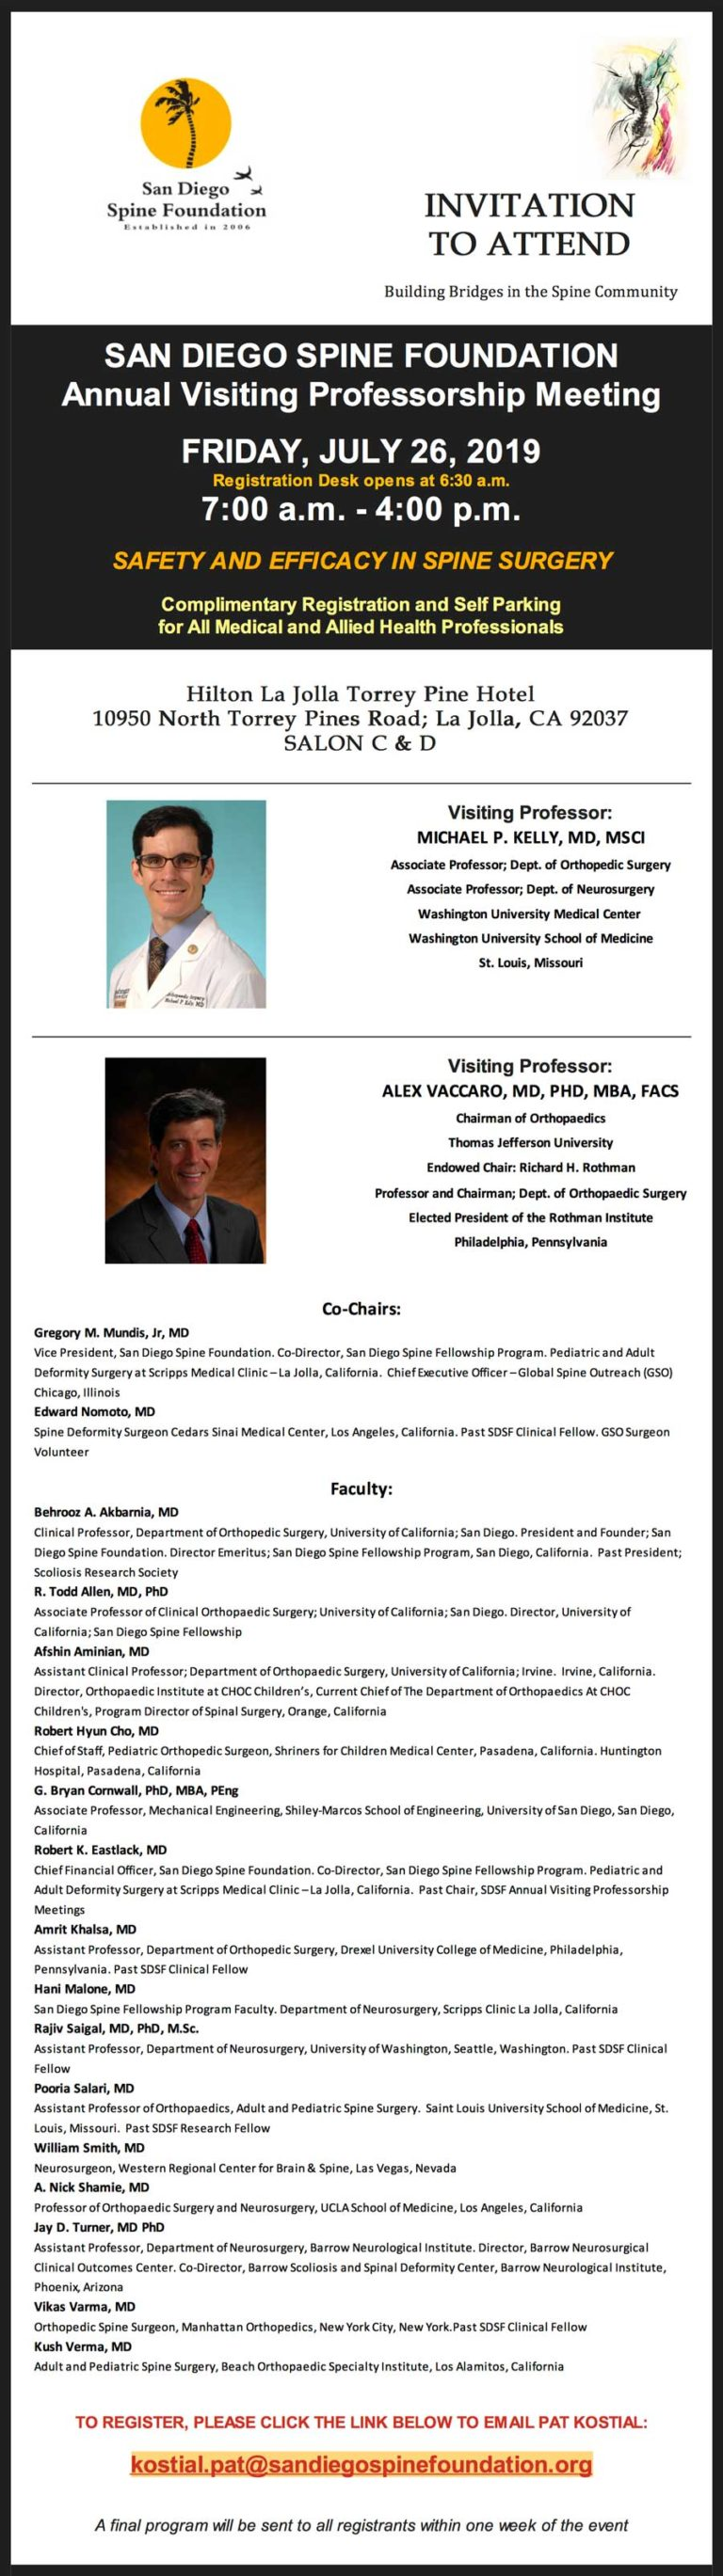 Dr Verma, faculty for a course on safety in spine surgery